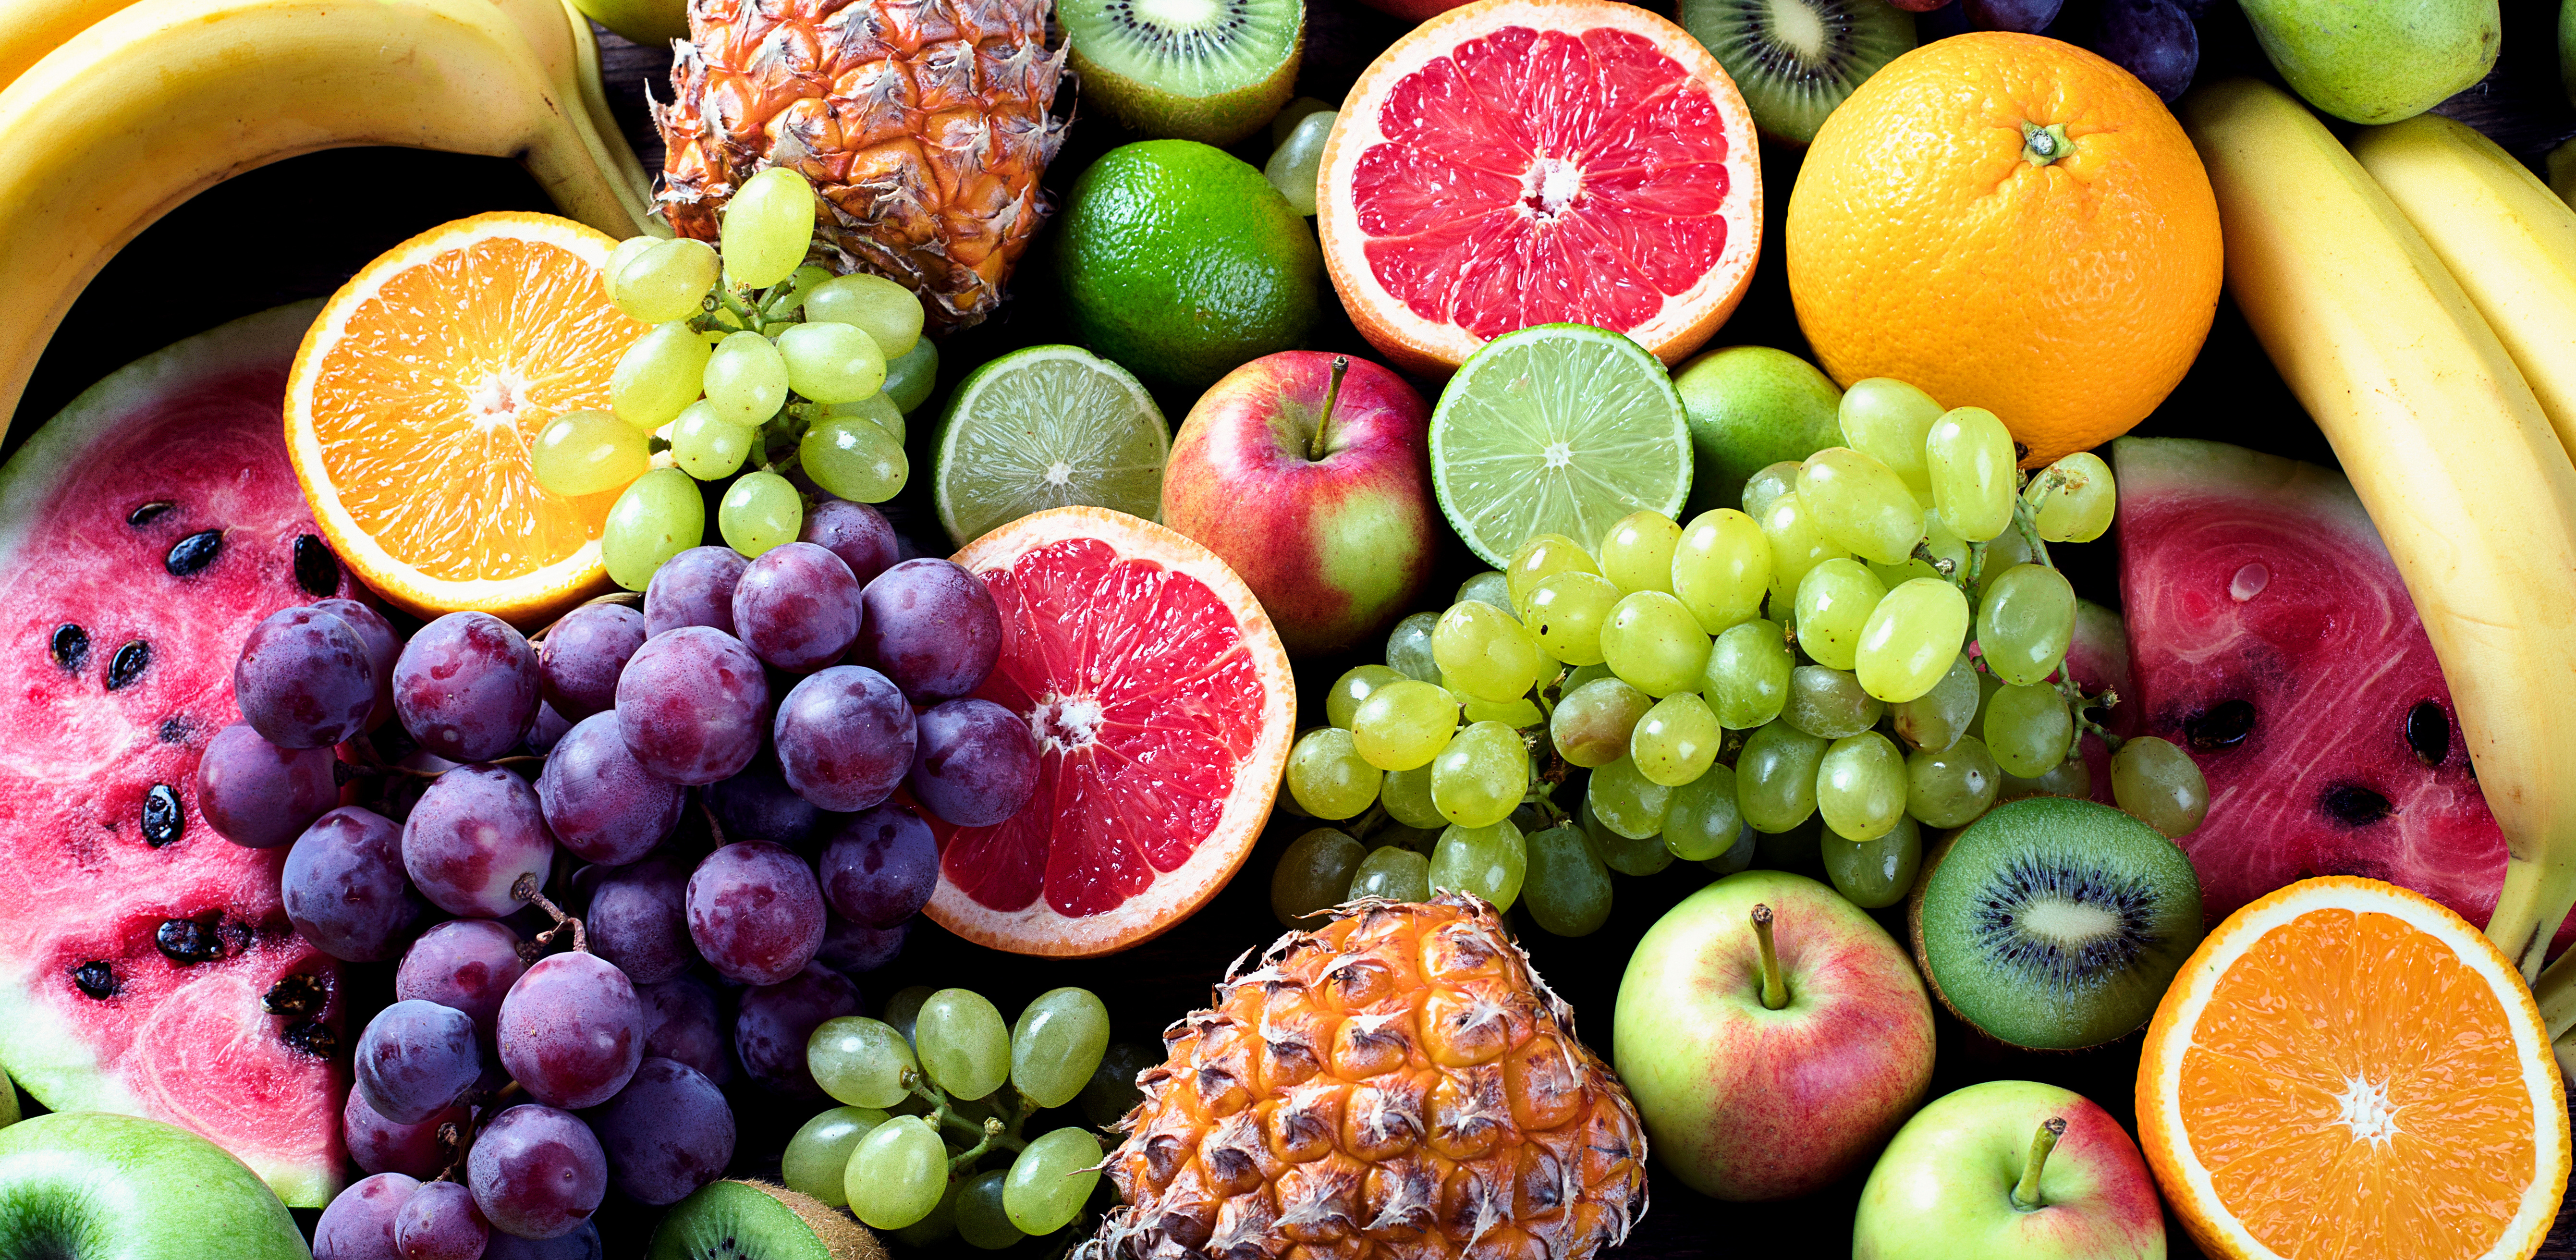 8 Fruits And Vegetables That Boost Your Mental Health